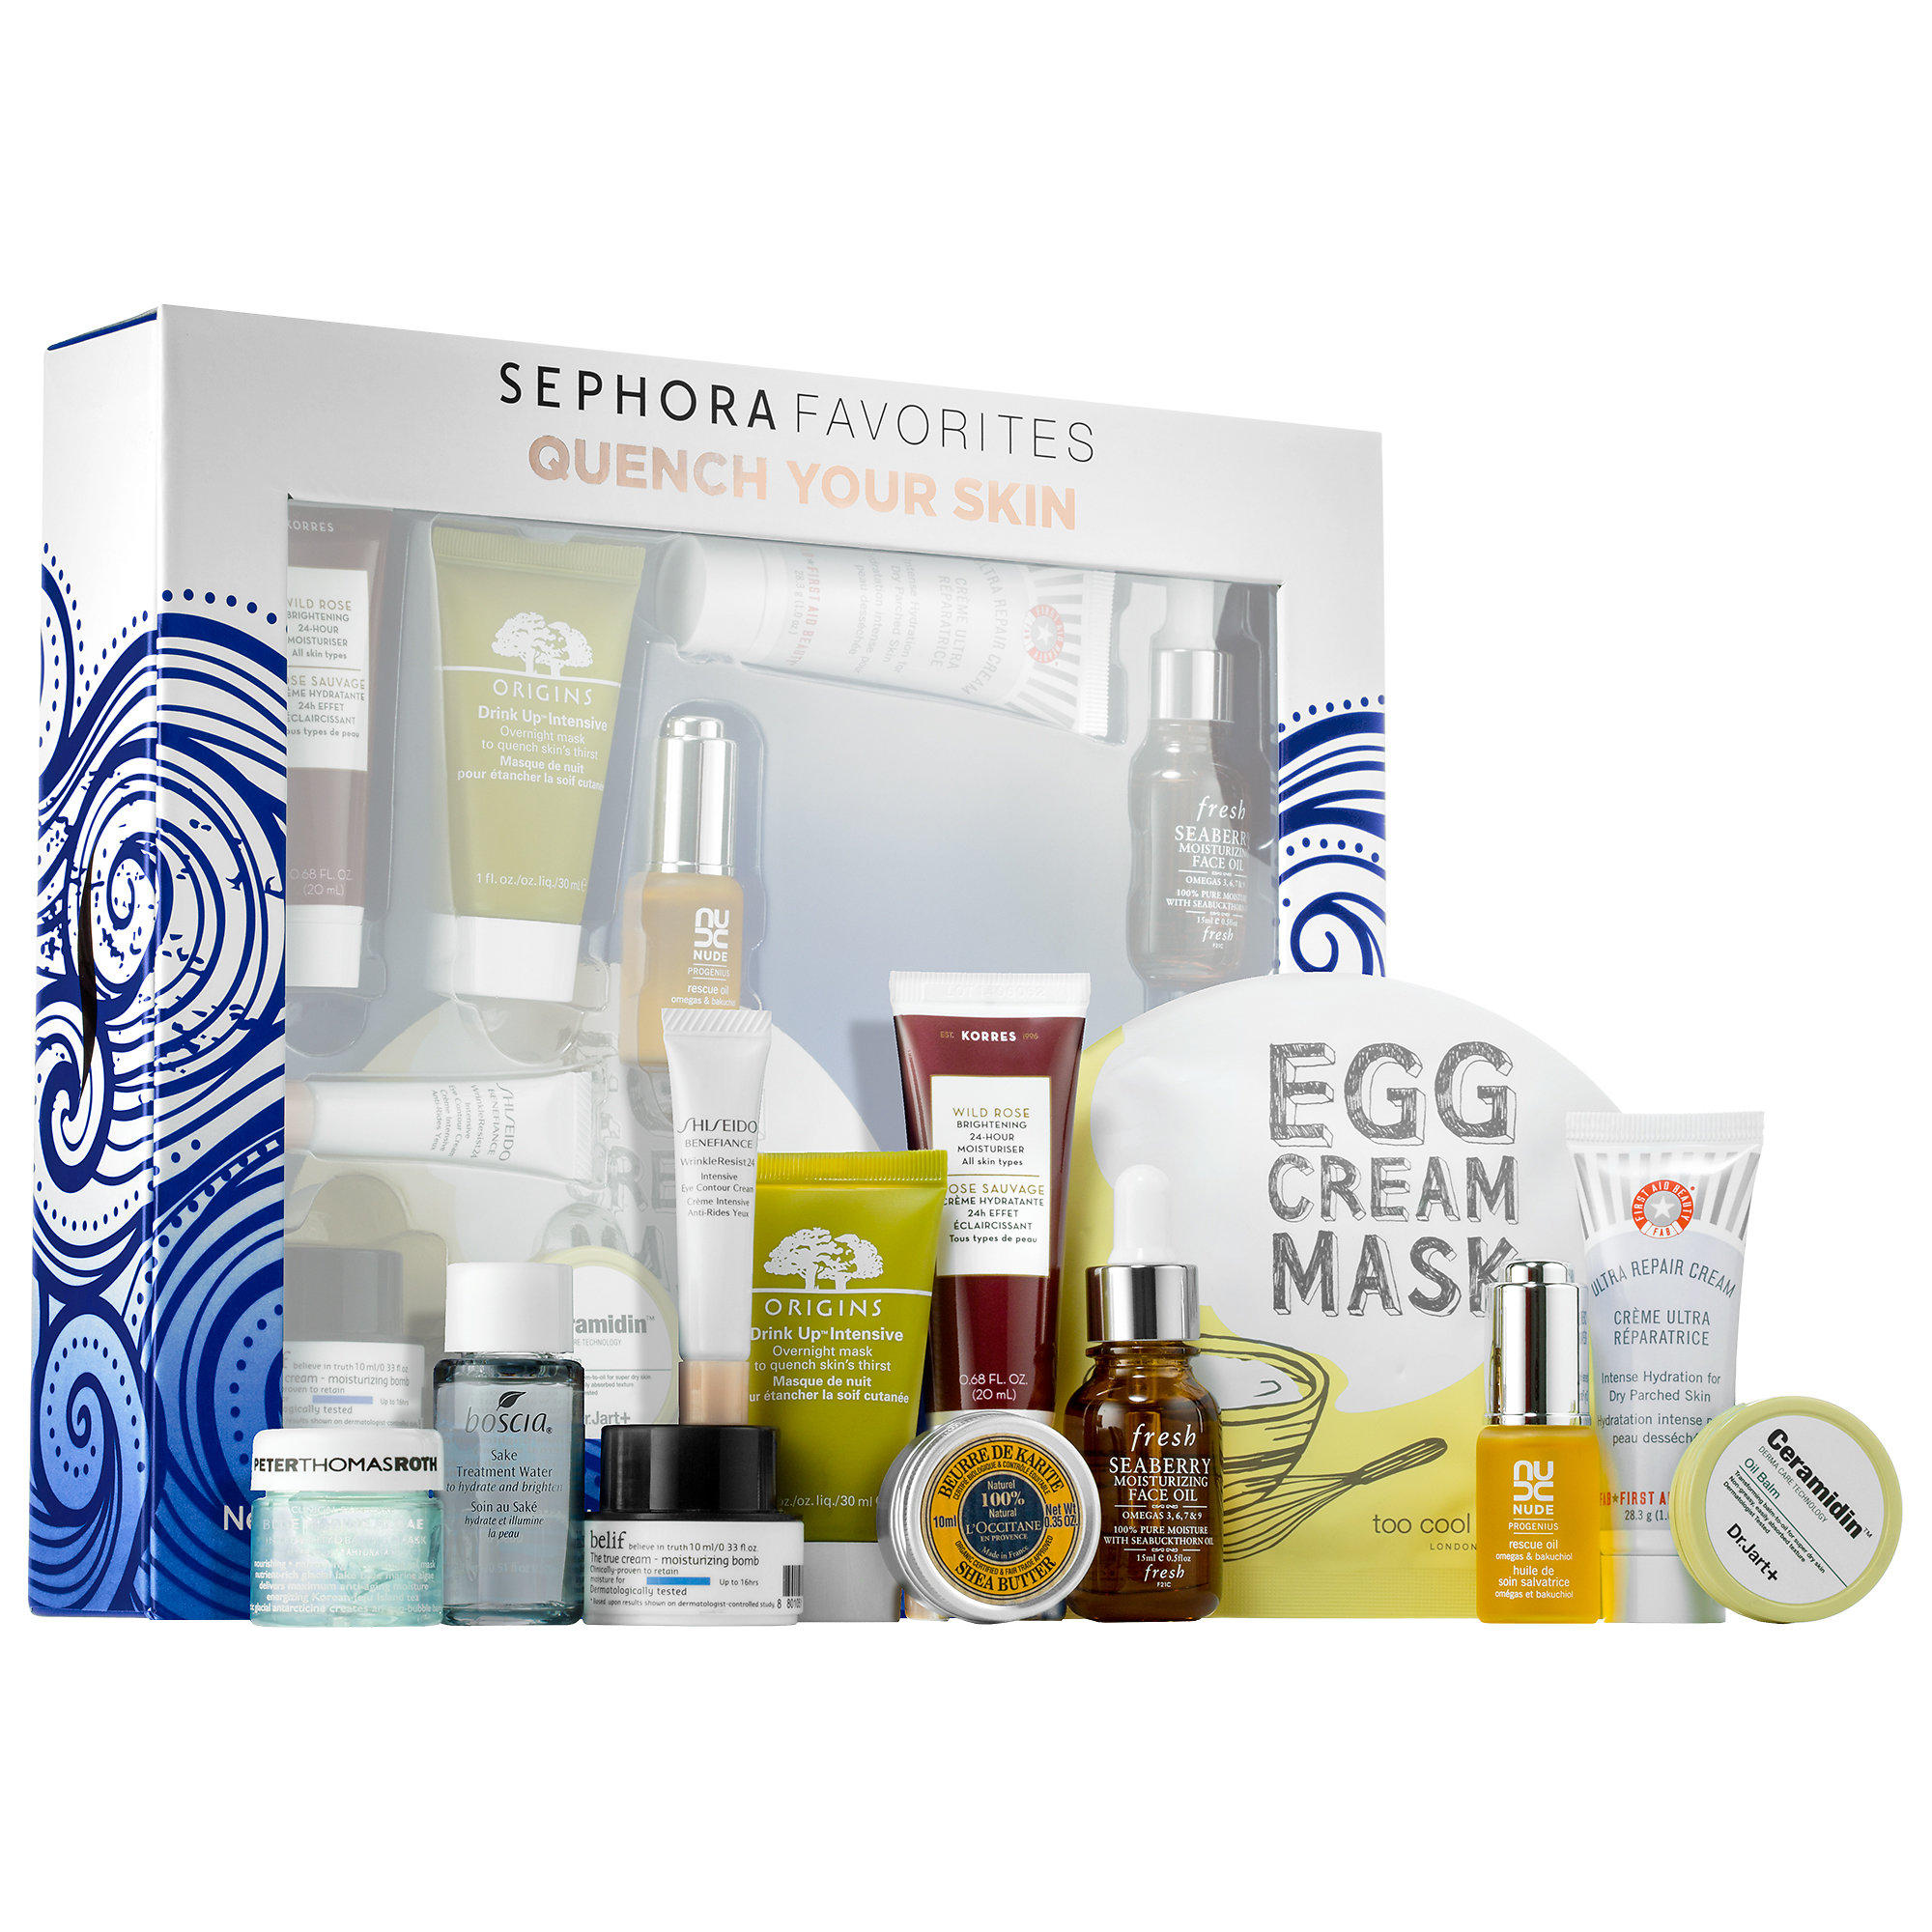 Sephora launched new Sephora Favorites Quench Your Skin Set